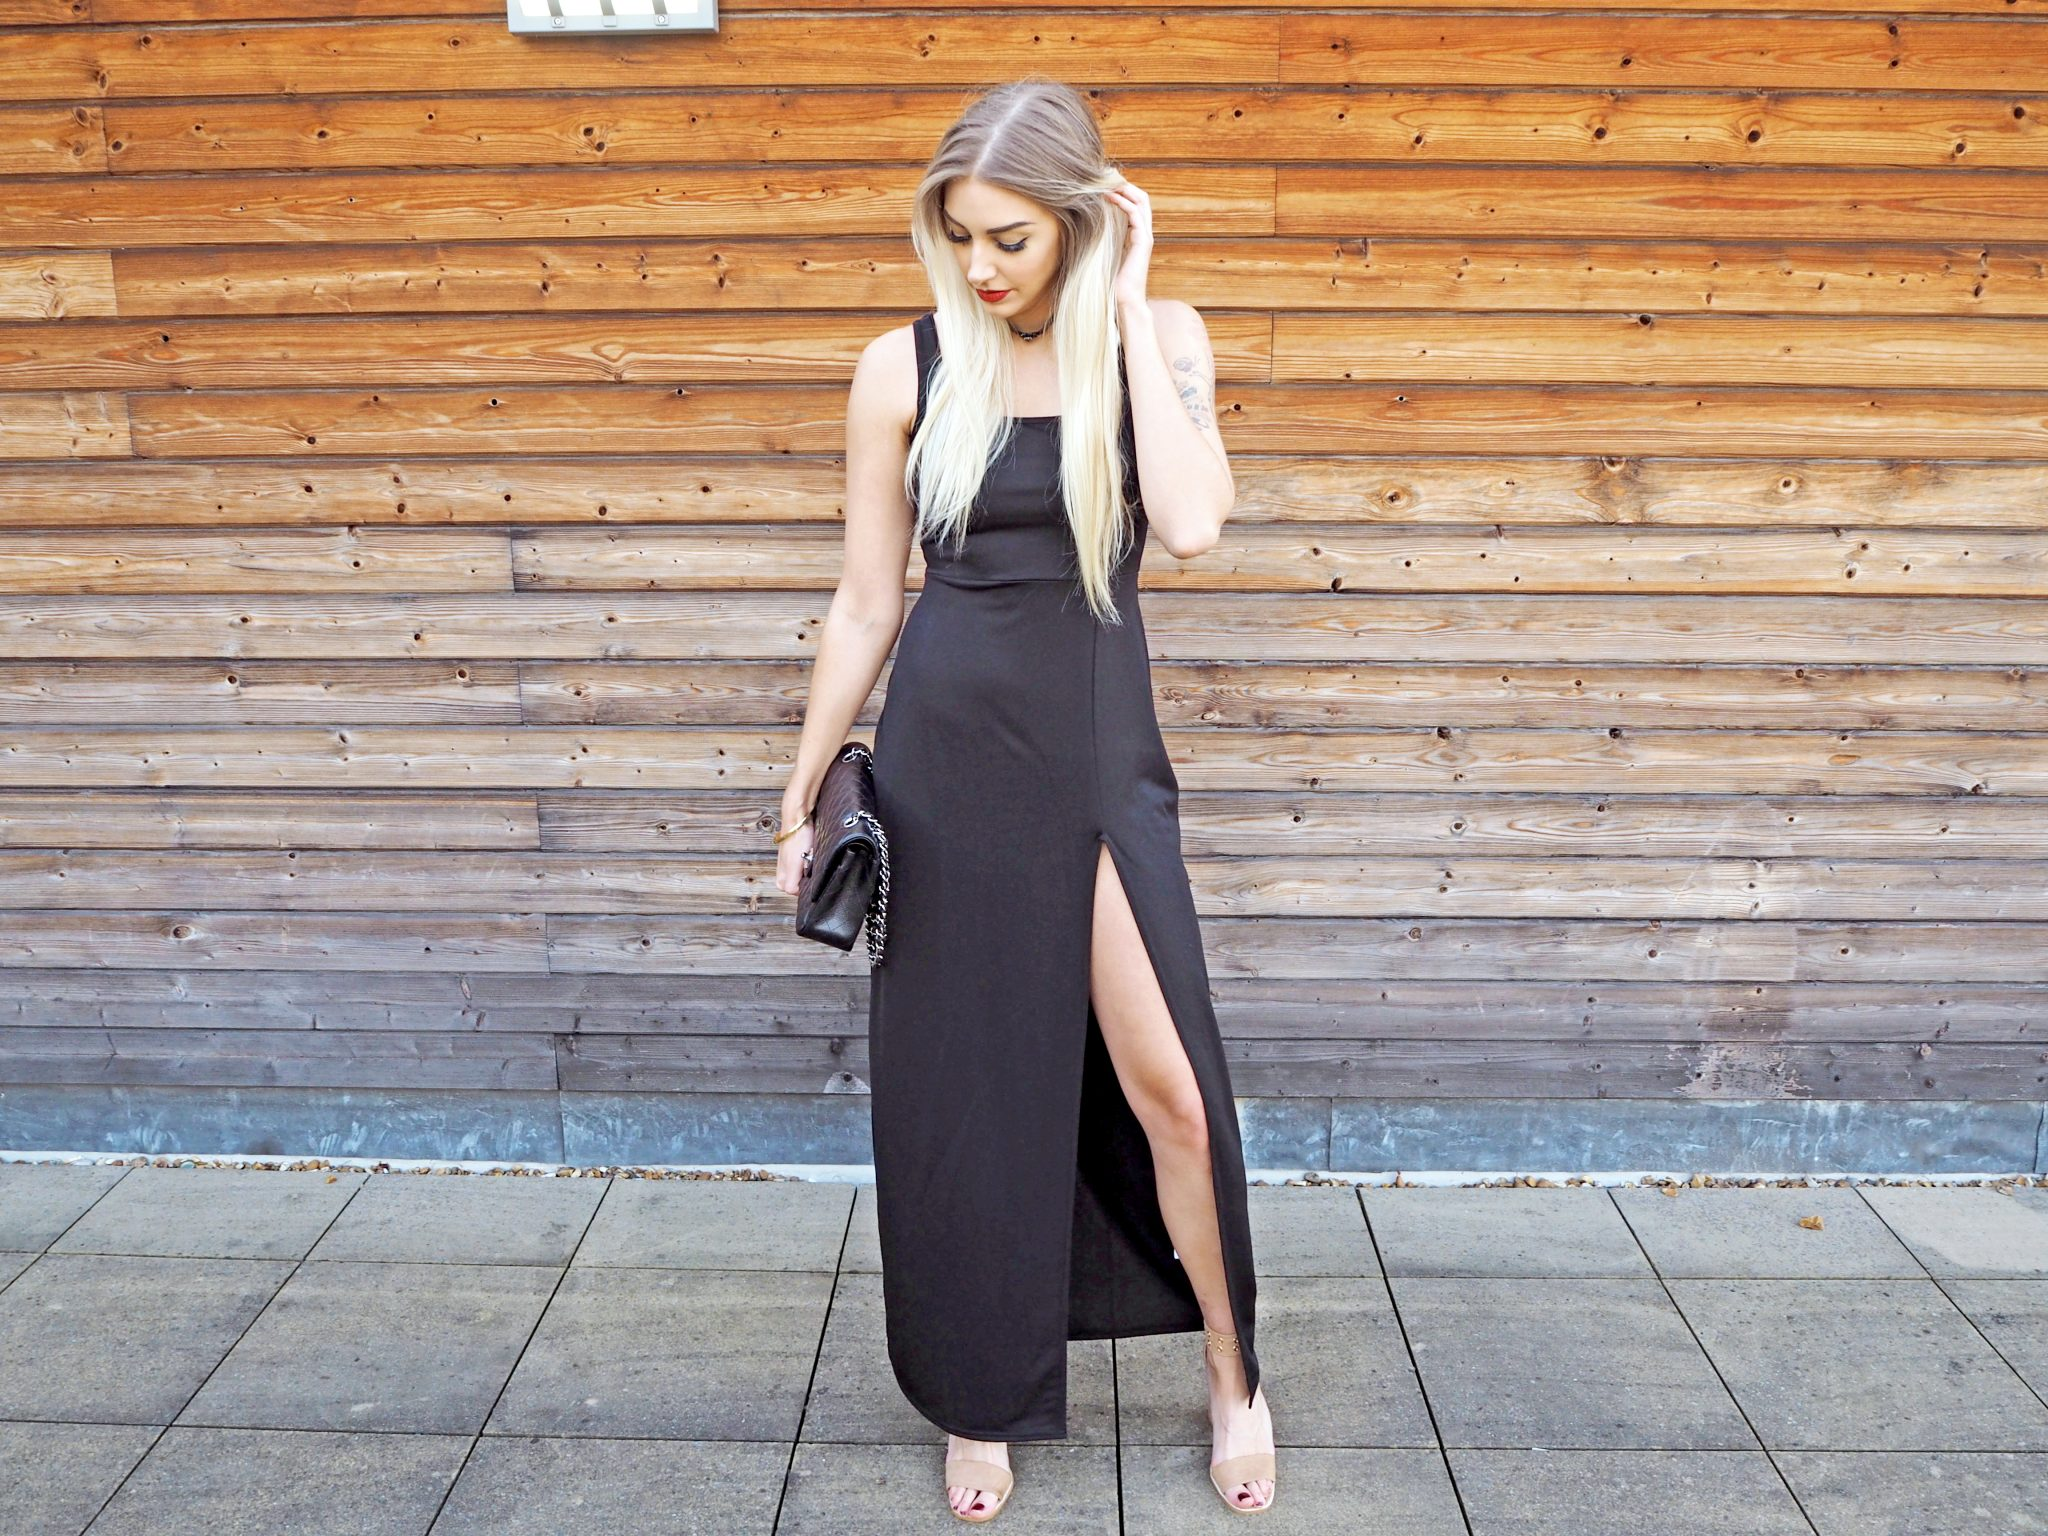 Laura Kate Lucas - Manchester Fashion, Lifestyle and Fitness Blogger   Prettly Little Thing #PLTBloggers Collaboration Dress Collection